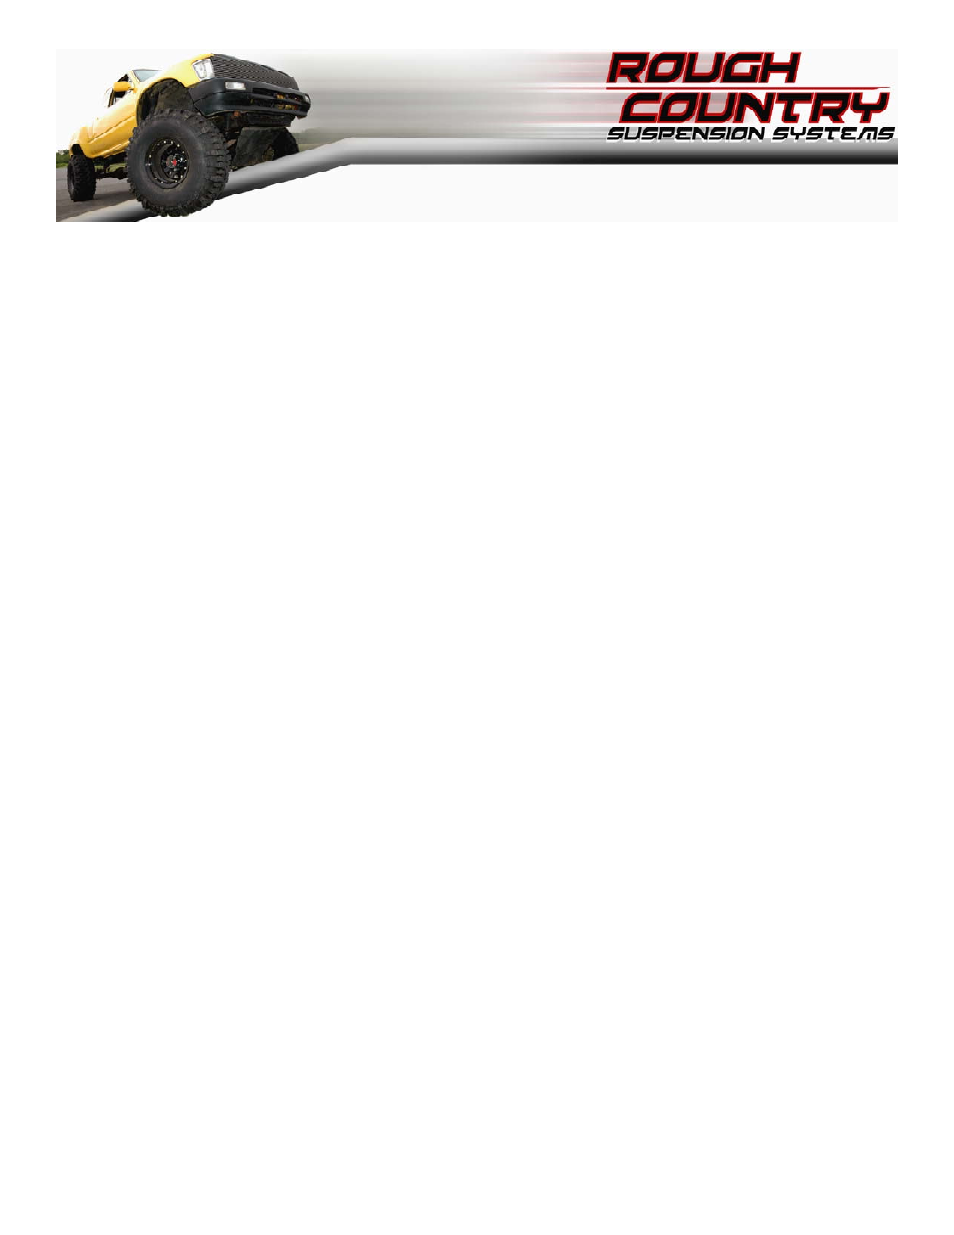 Rough Country 734 20 User Manual | 8 pages